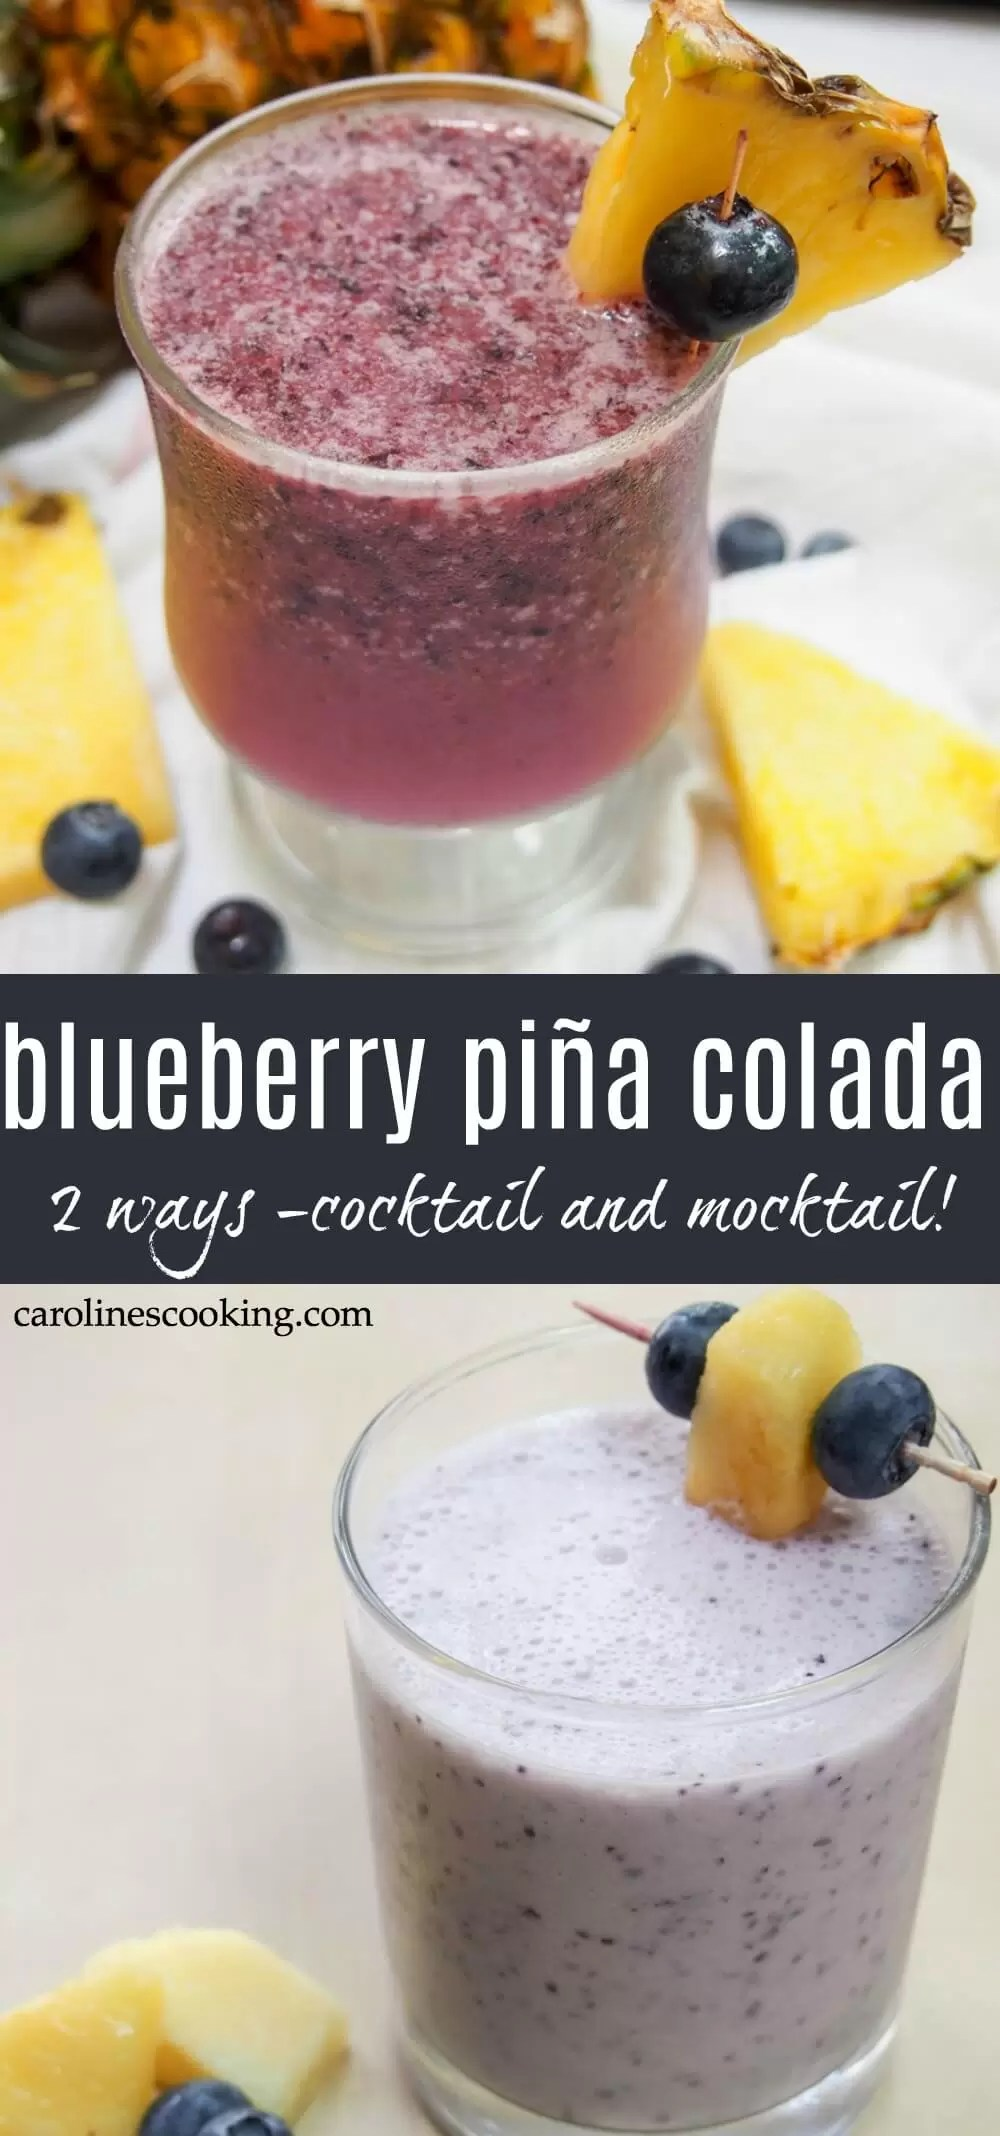 Refreshing, with a kick (or not, if you prefer a mocktail), this blueberry pina colada is a bright twist on the classic cocktail. Plus there's more than one way to make it, so pick your favorite! One is more of a blueberry take on the classic cocktail, the other closer to a smoothie. Both are delicious in their own way. #pinacolada #cocktail #mocktail